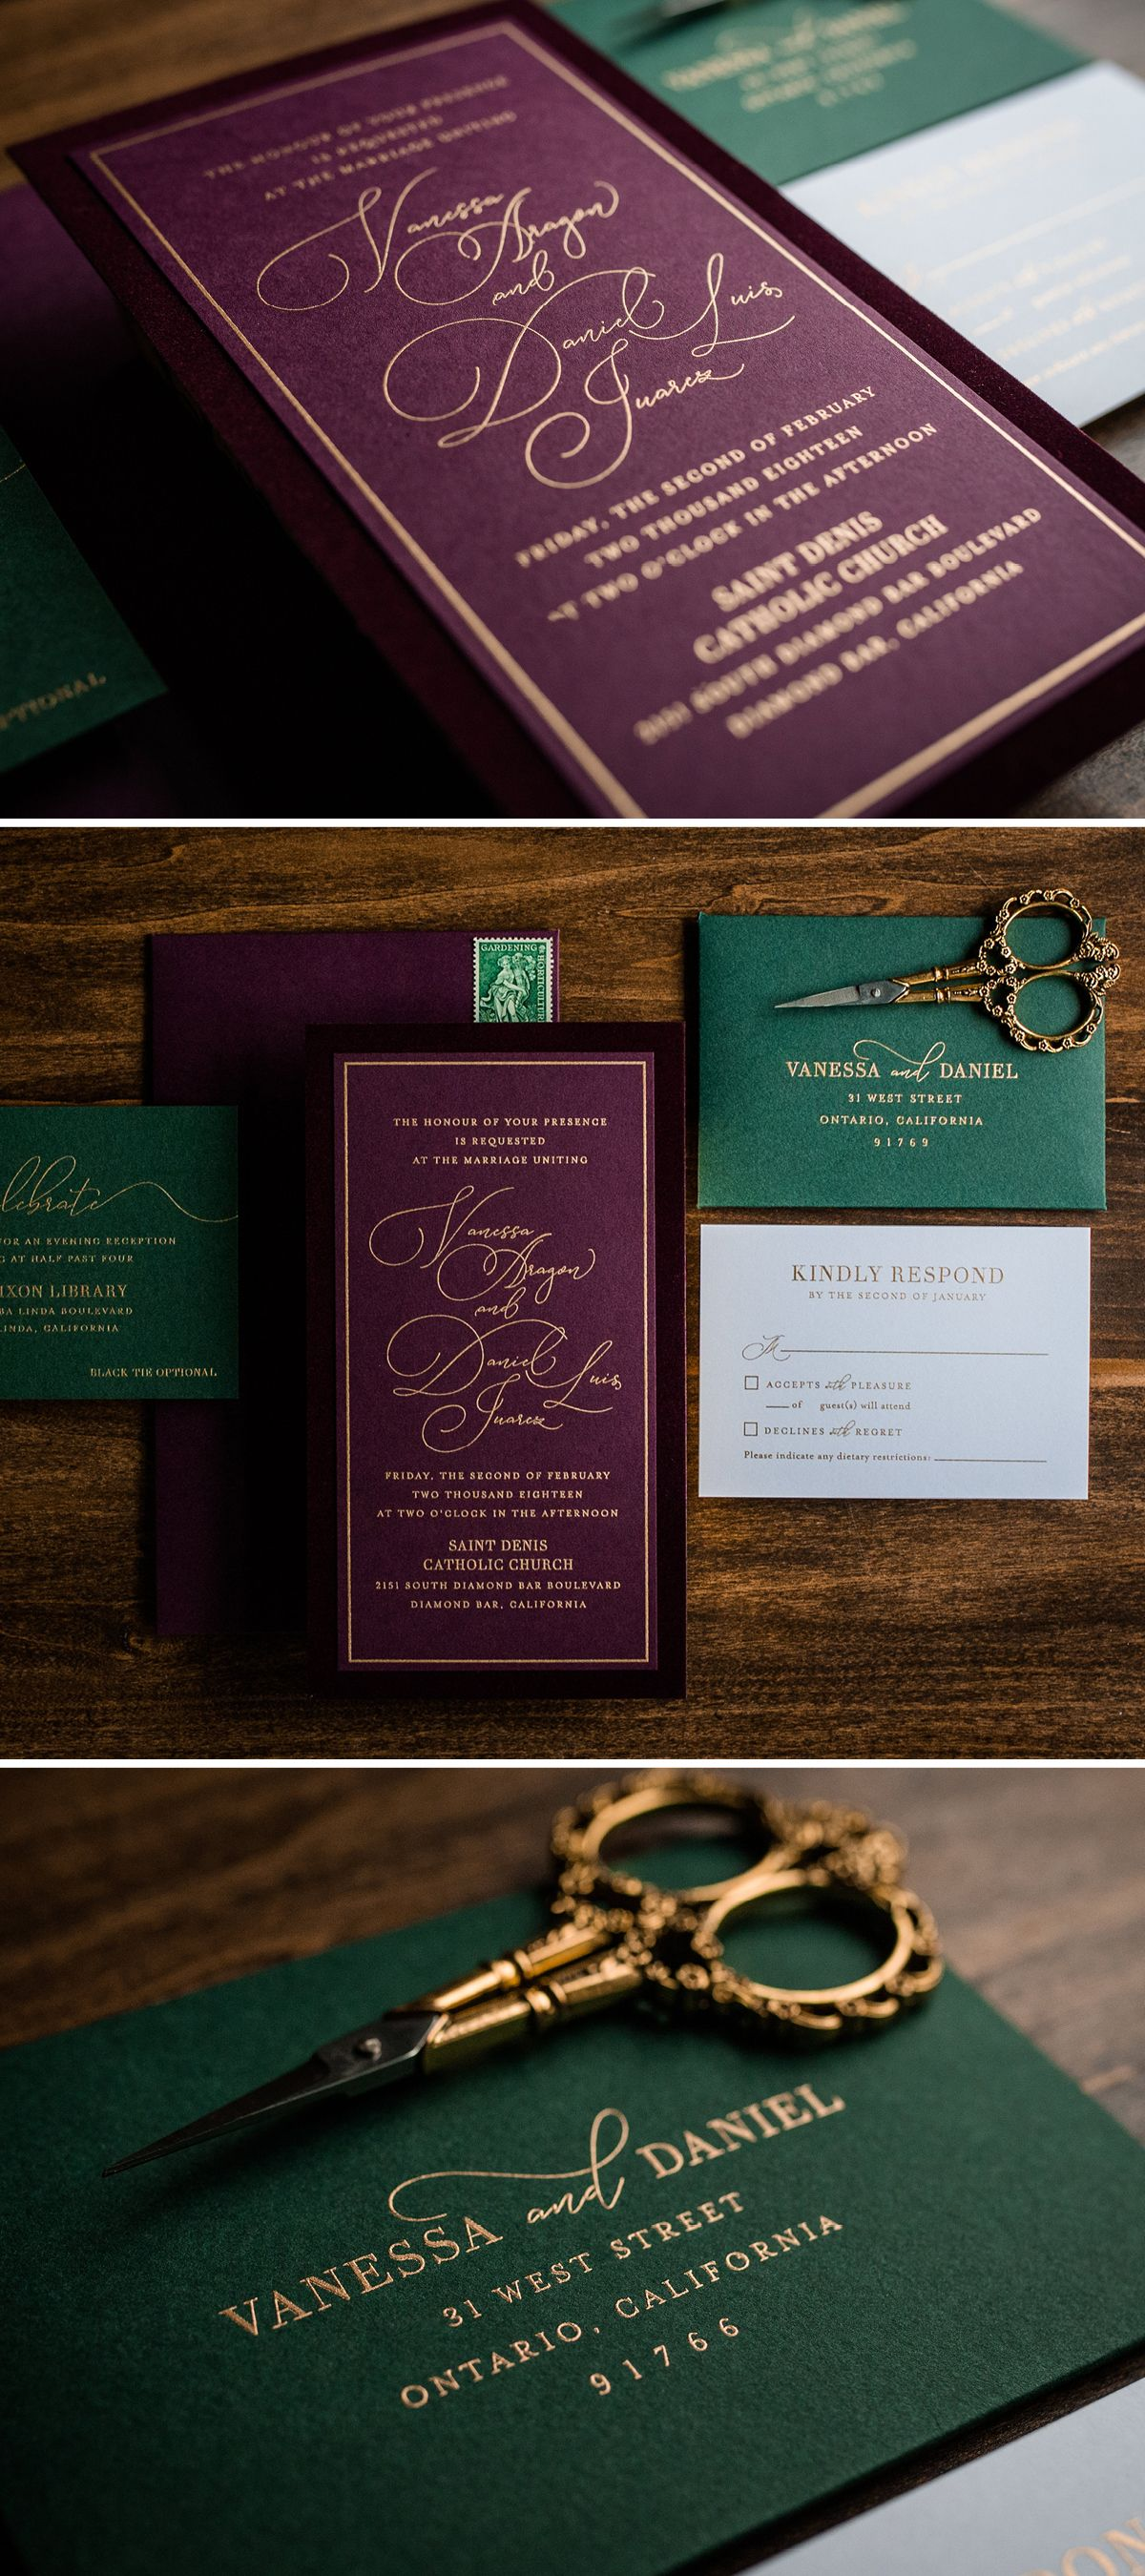 irish wedding invitations templates%0A Marble and gold wedding invitation suite with stunning green touches     Green Weddings   Pinterest   Gold wedding invitation suites  Invitation  suite and